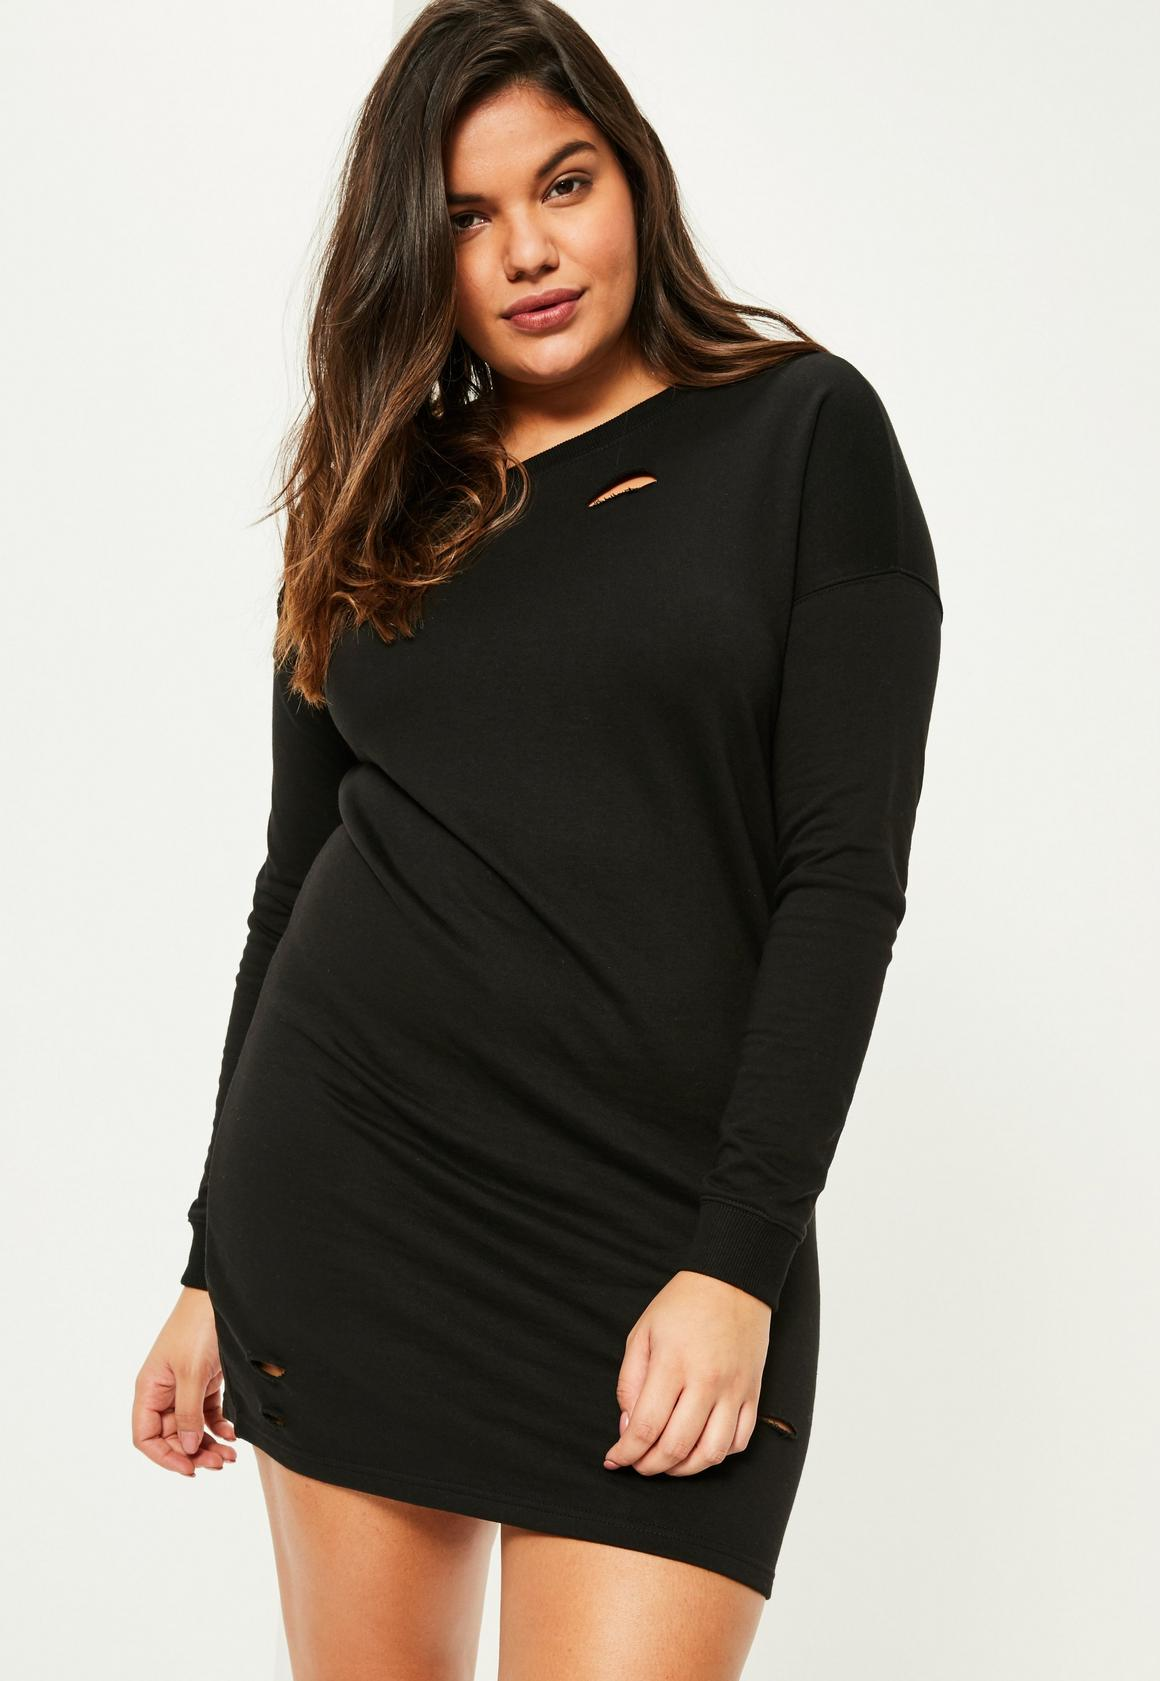 Plus Size Black Ripped Oversized Sweater Dress | Missguided